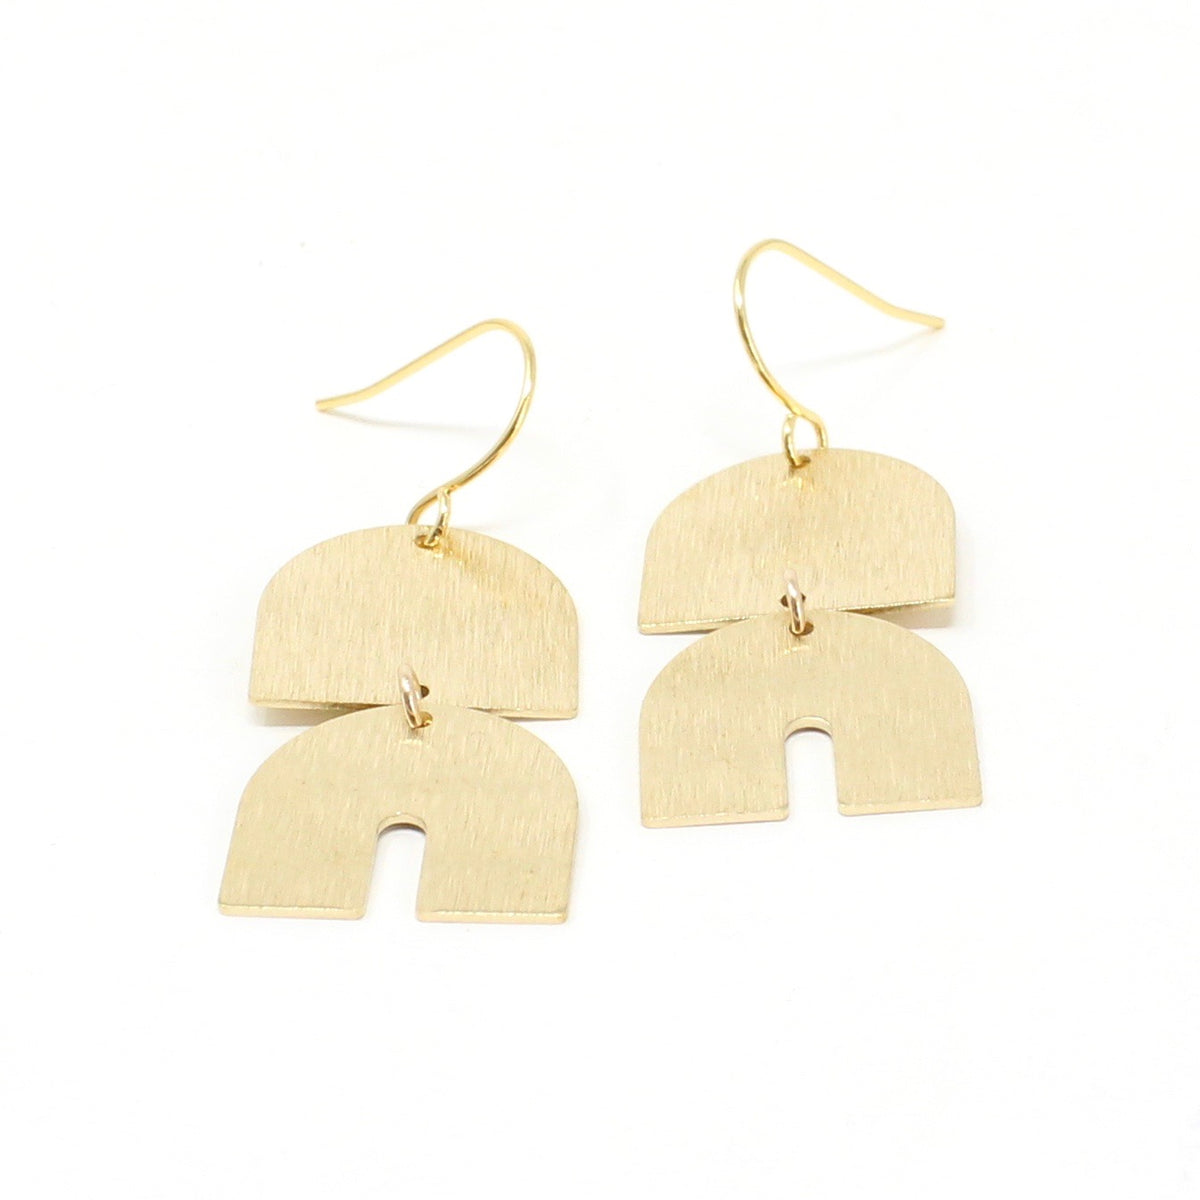 Temple - gold-brushed small earrings